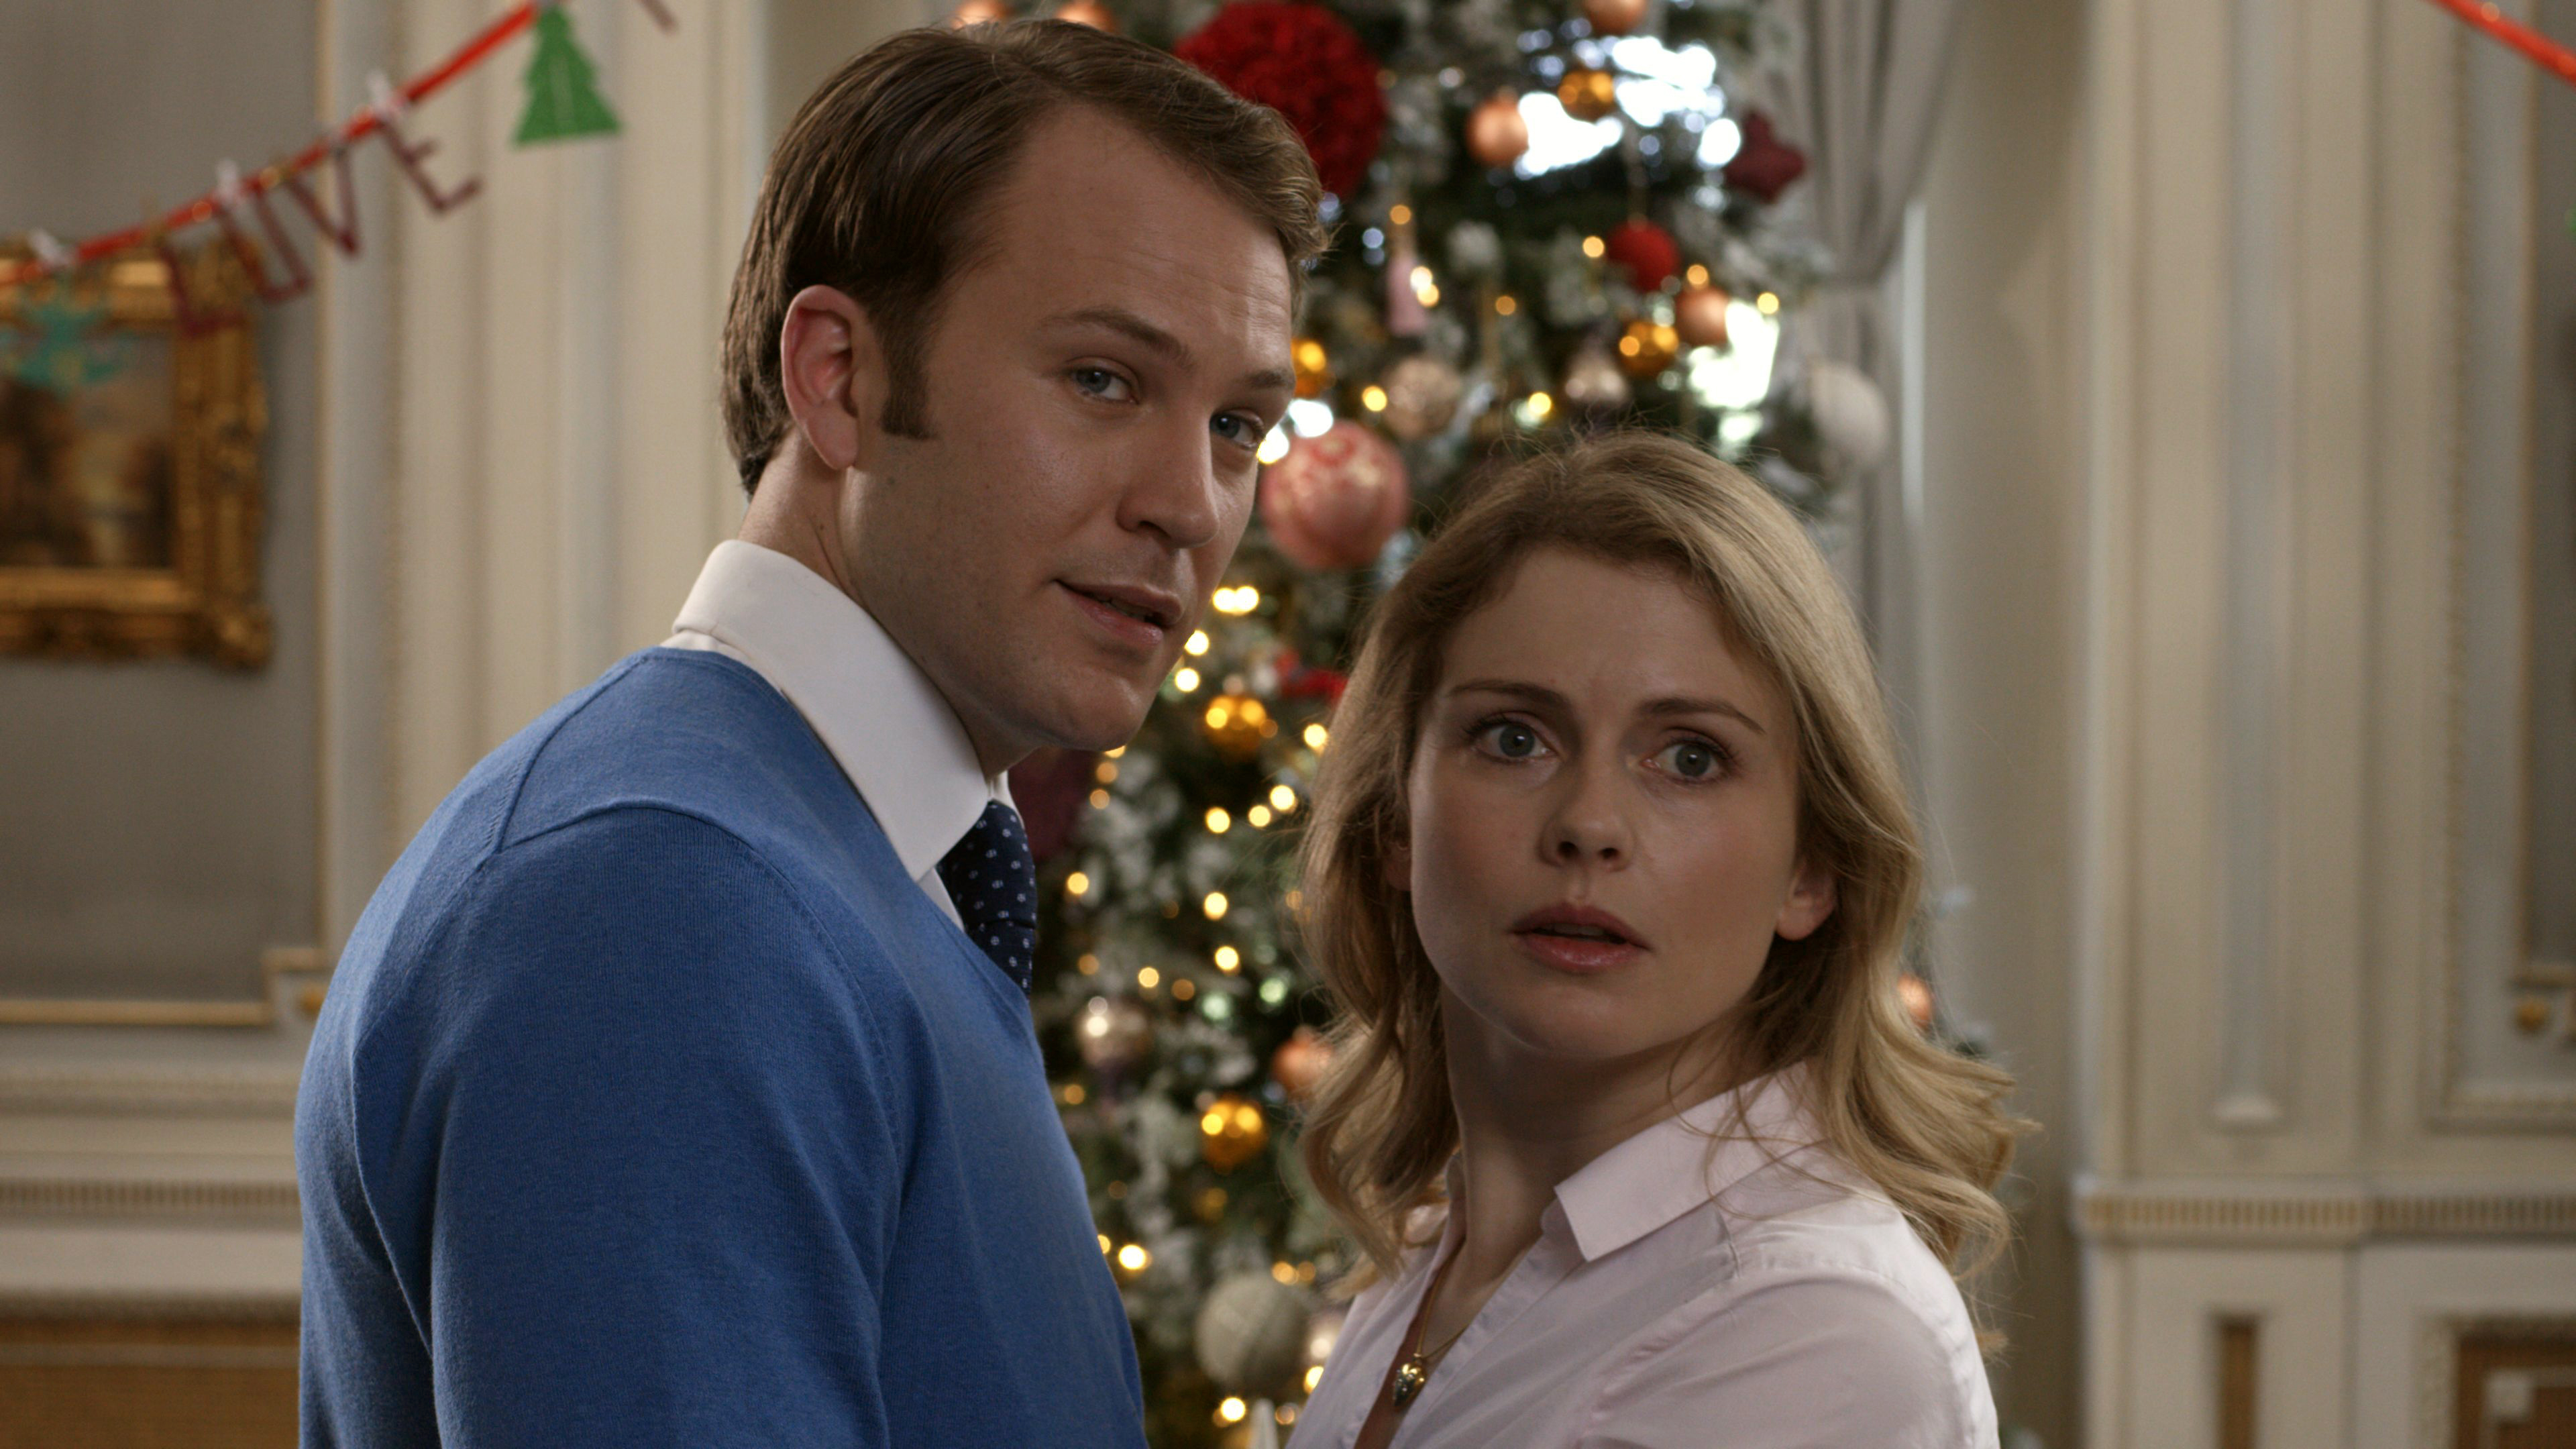 'A Christmas Prince: The Royal Wedding': Holiday Rom-Coms Are Harder Than They Look